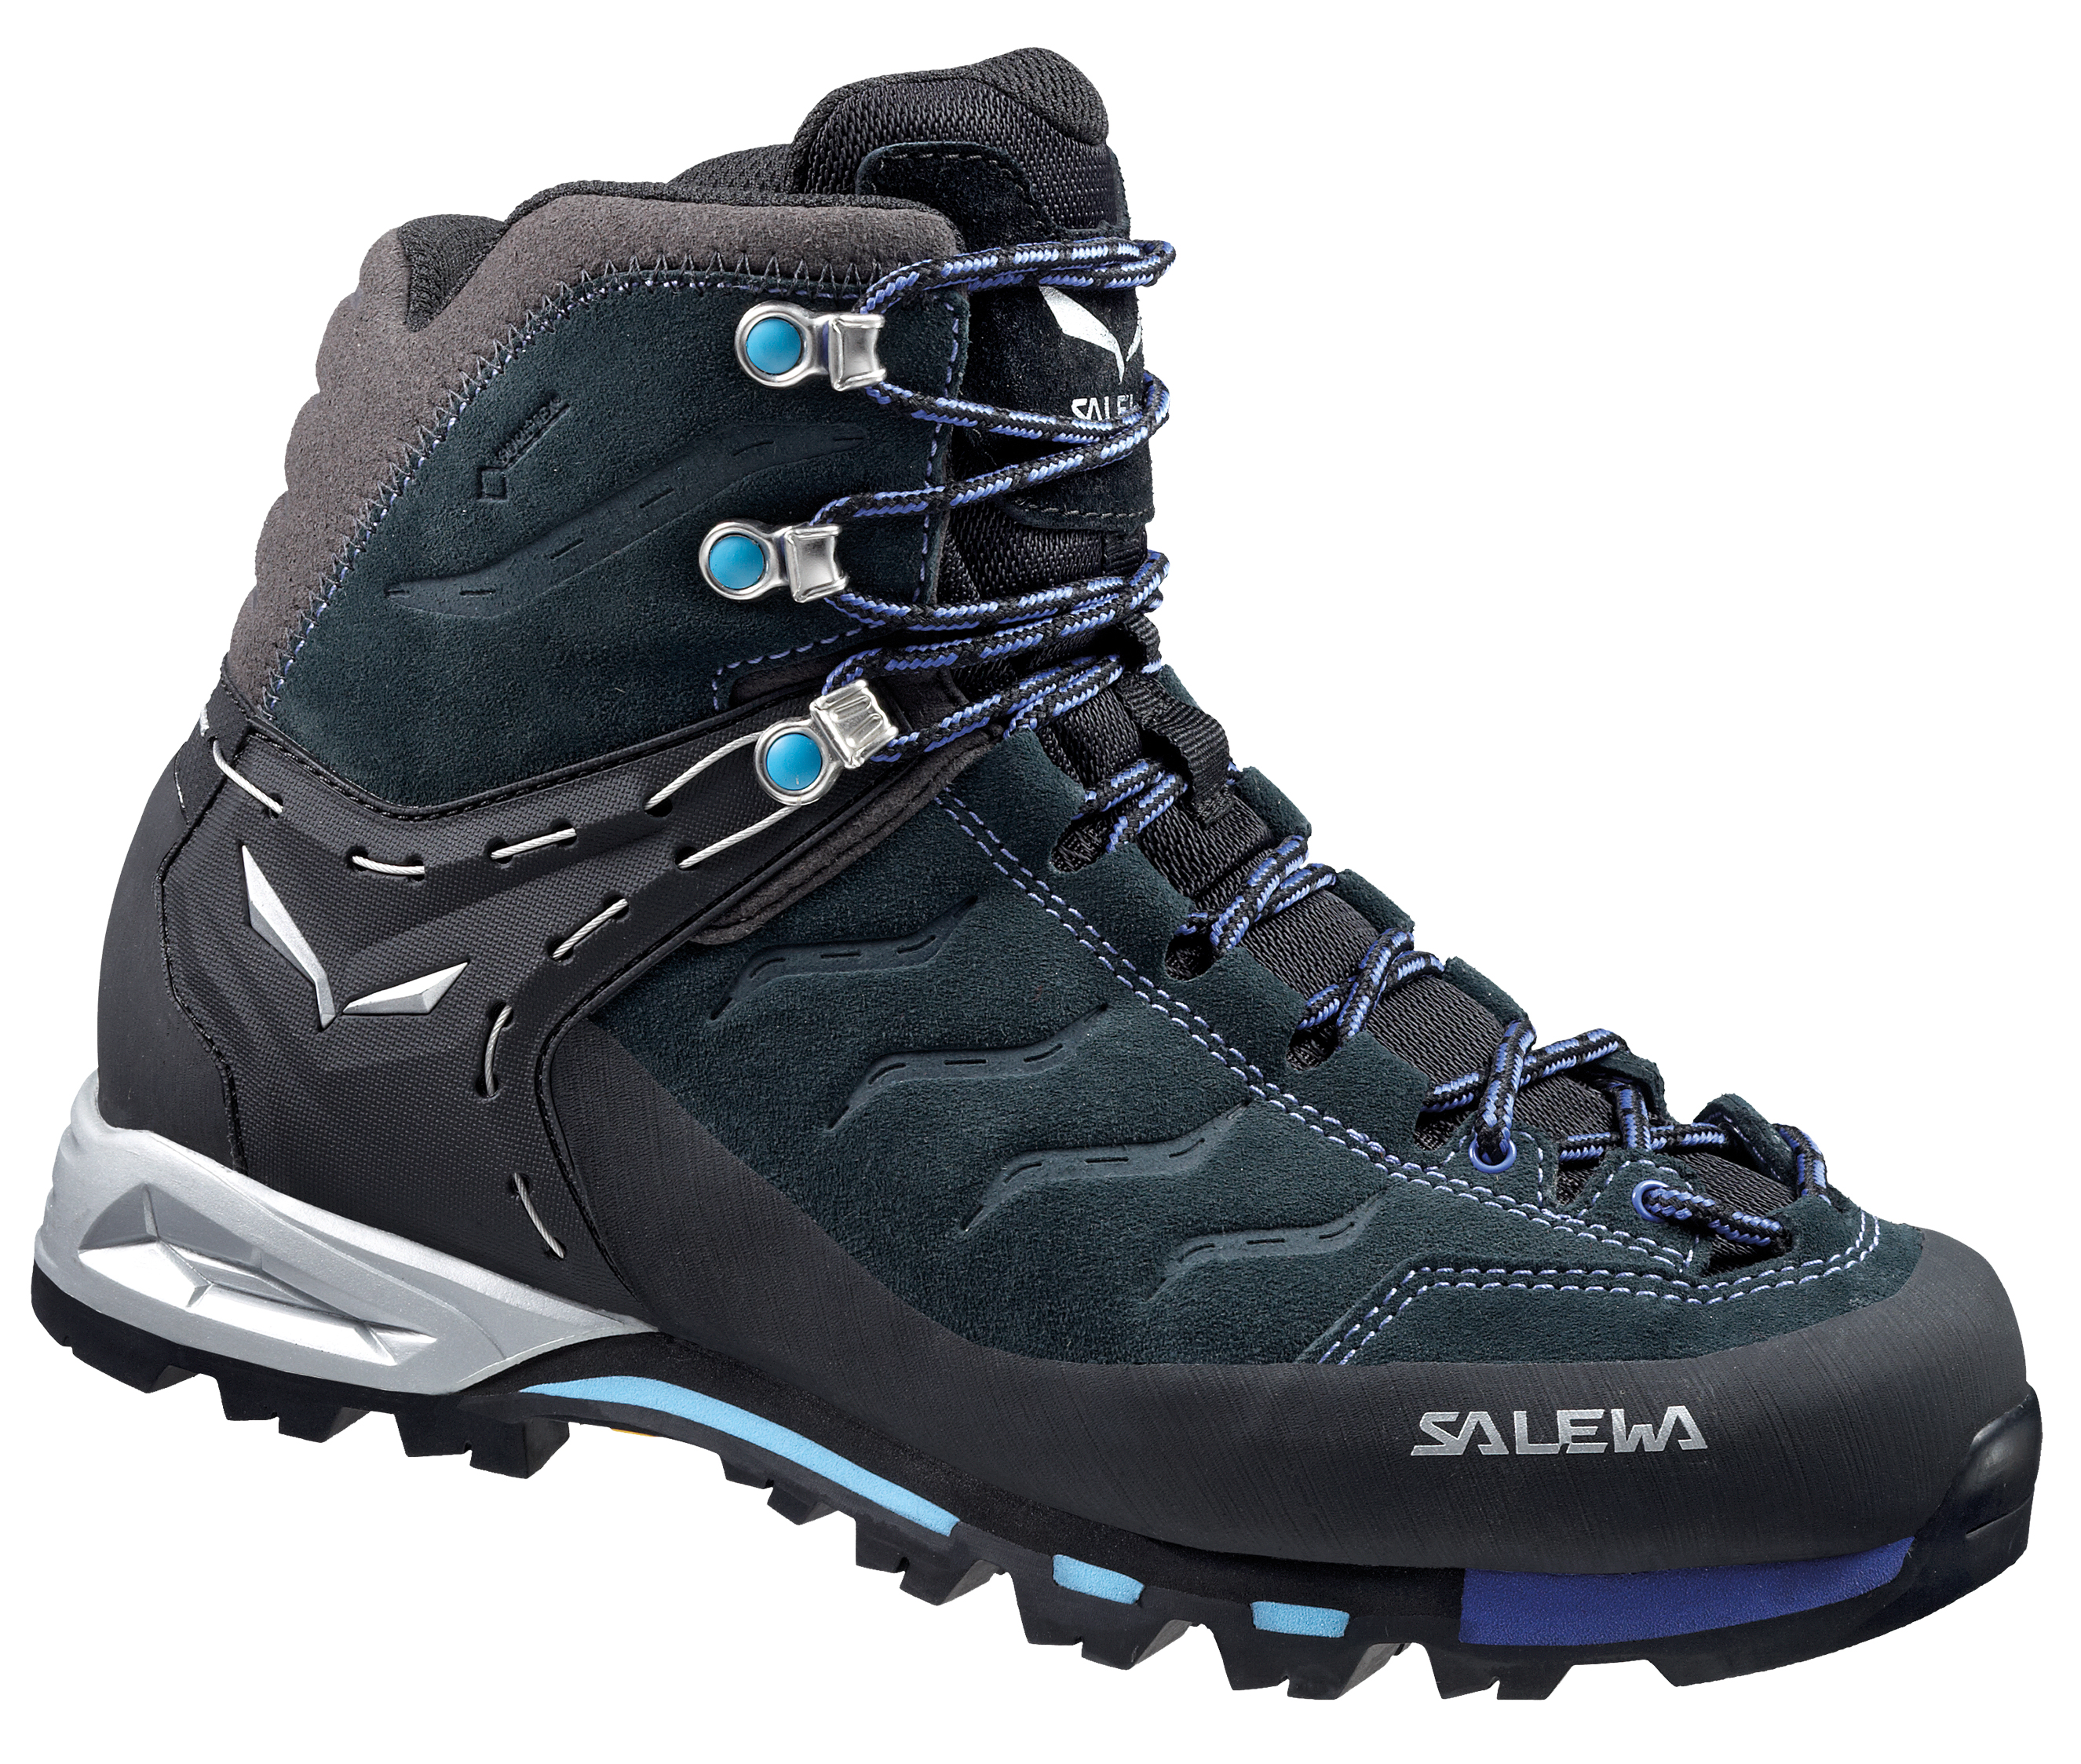 6e9140c2d94 Salewa Mountain Trainer Mid Gore-Tex Hiking Boots - Women's